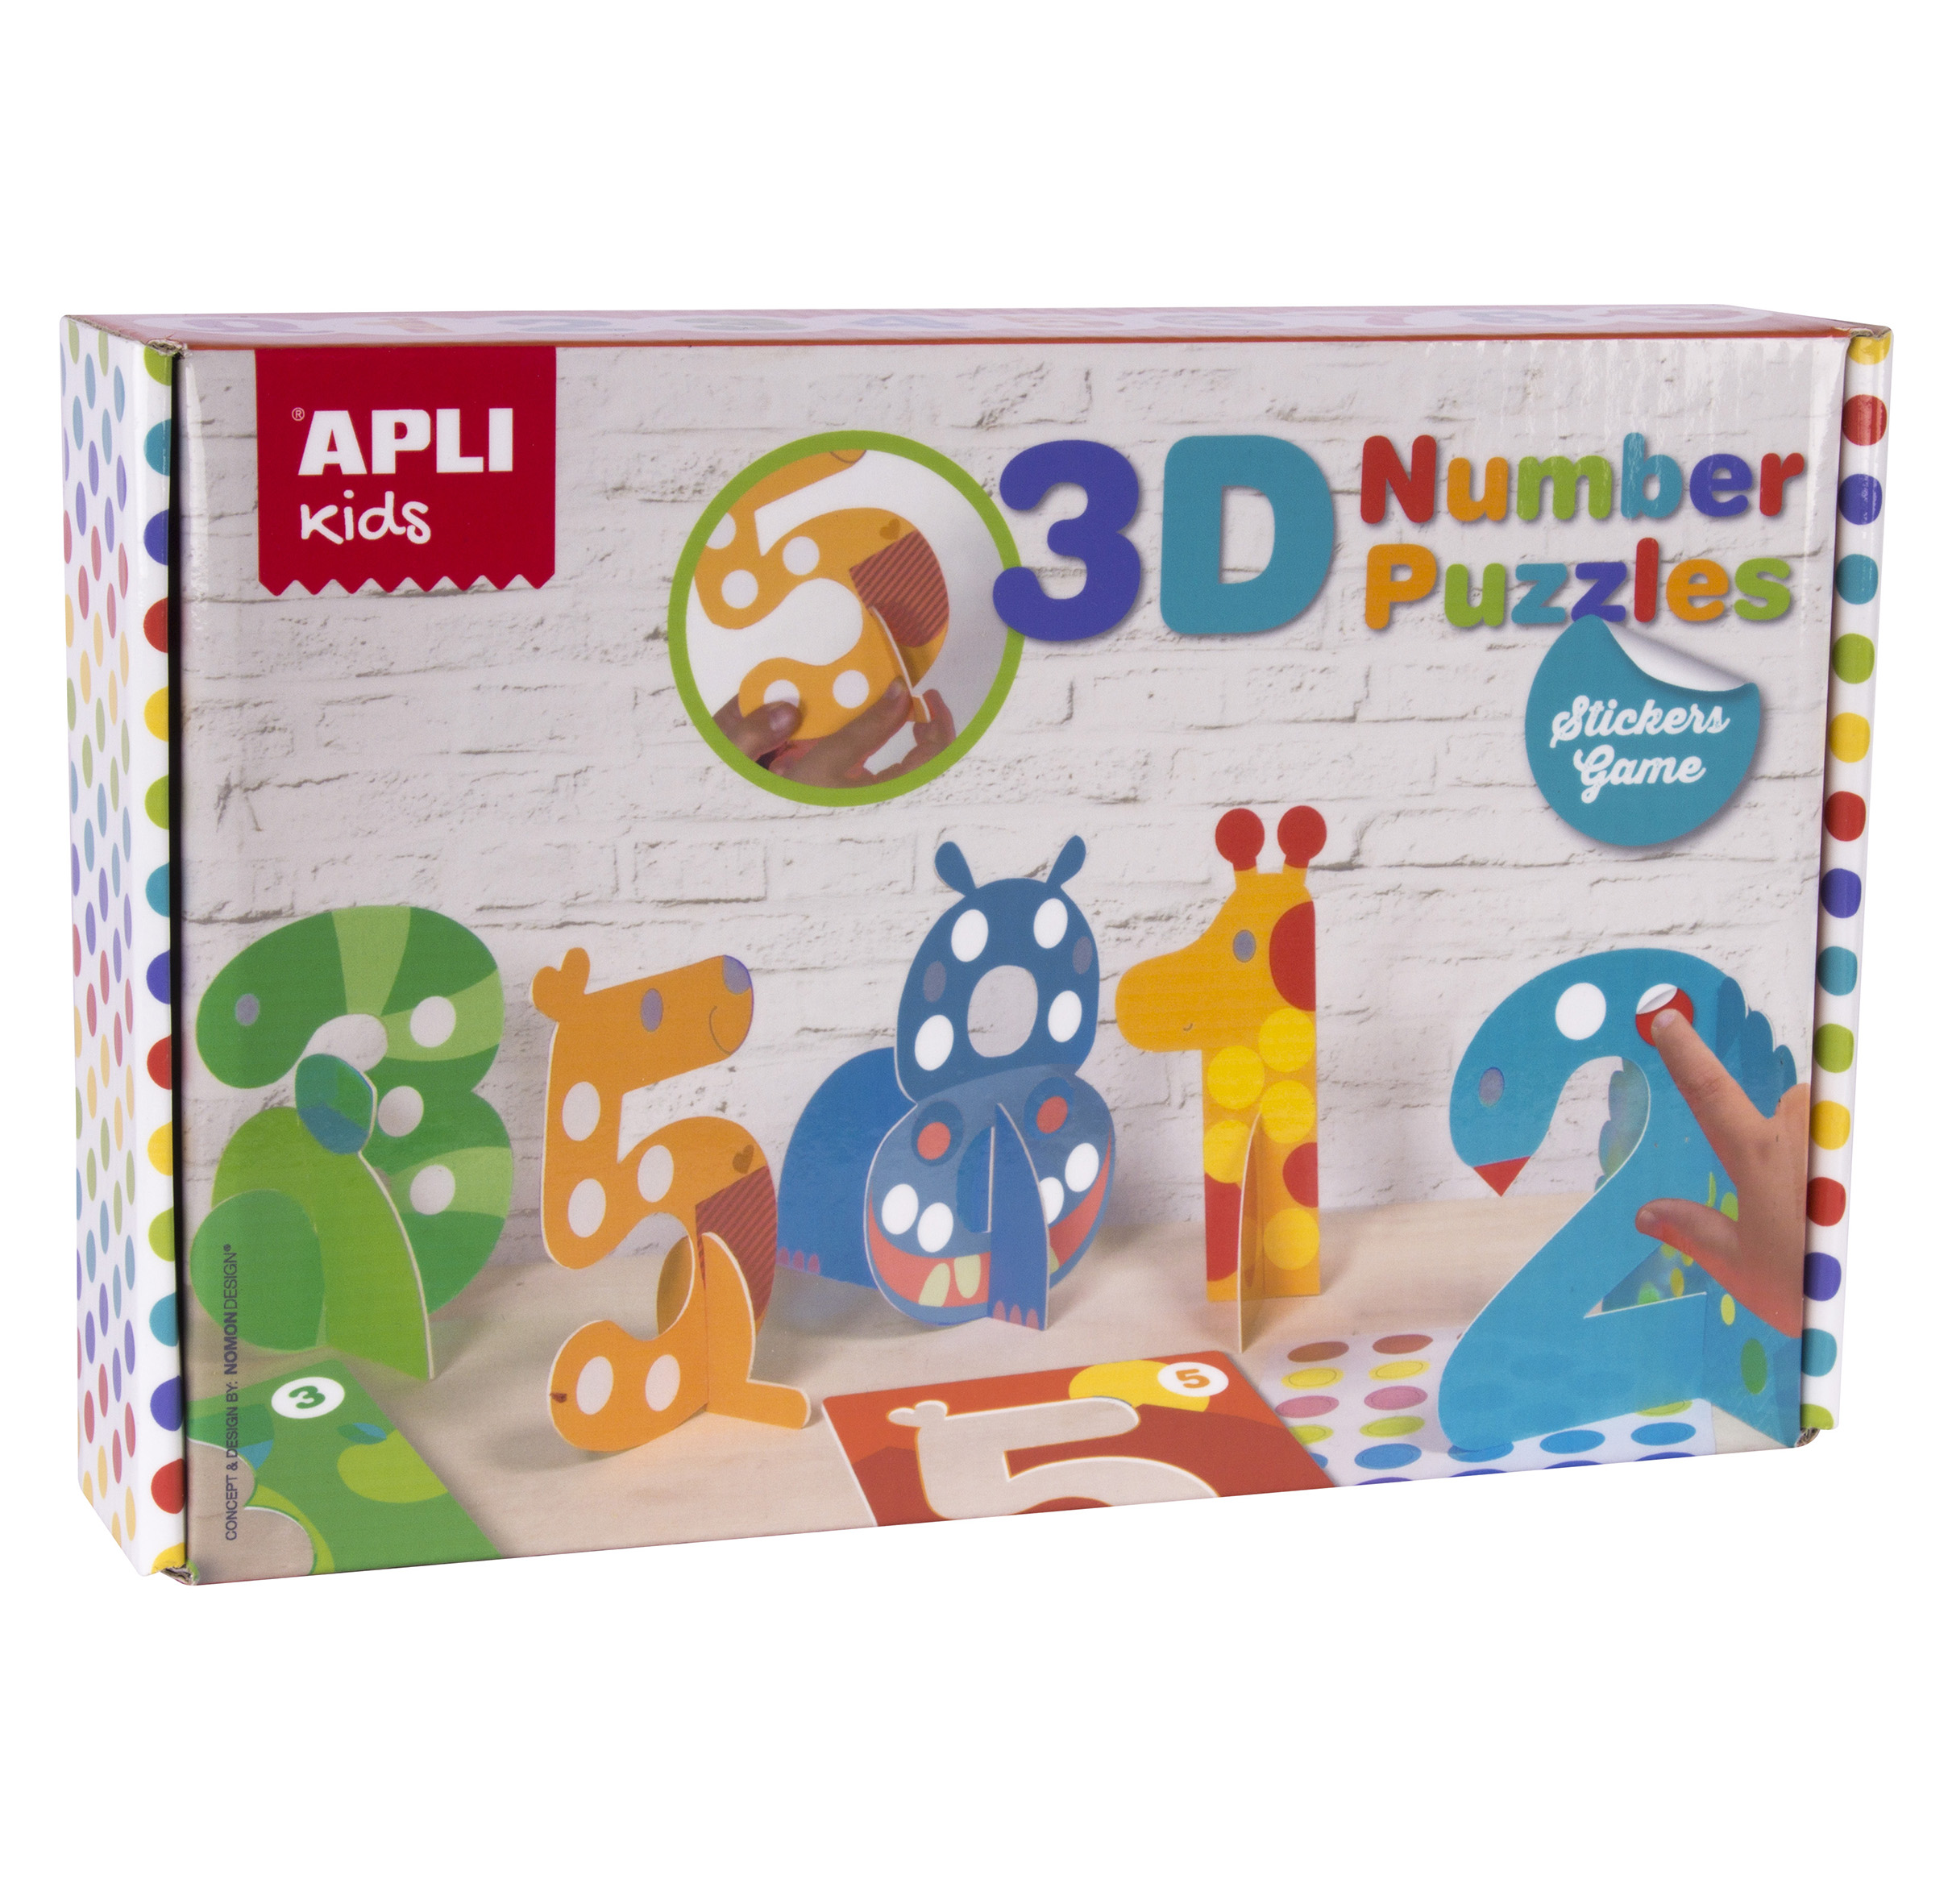 Apli Kids Archives